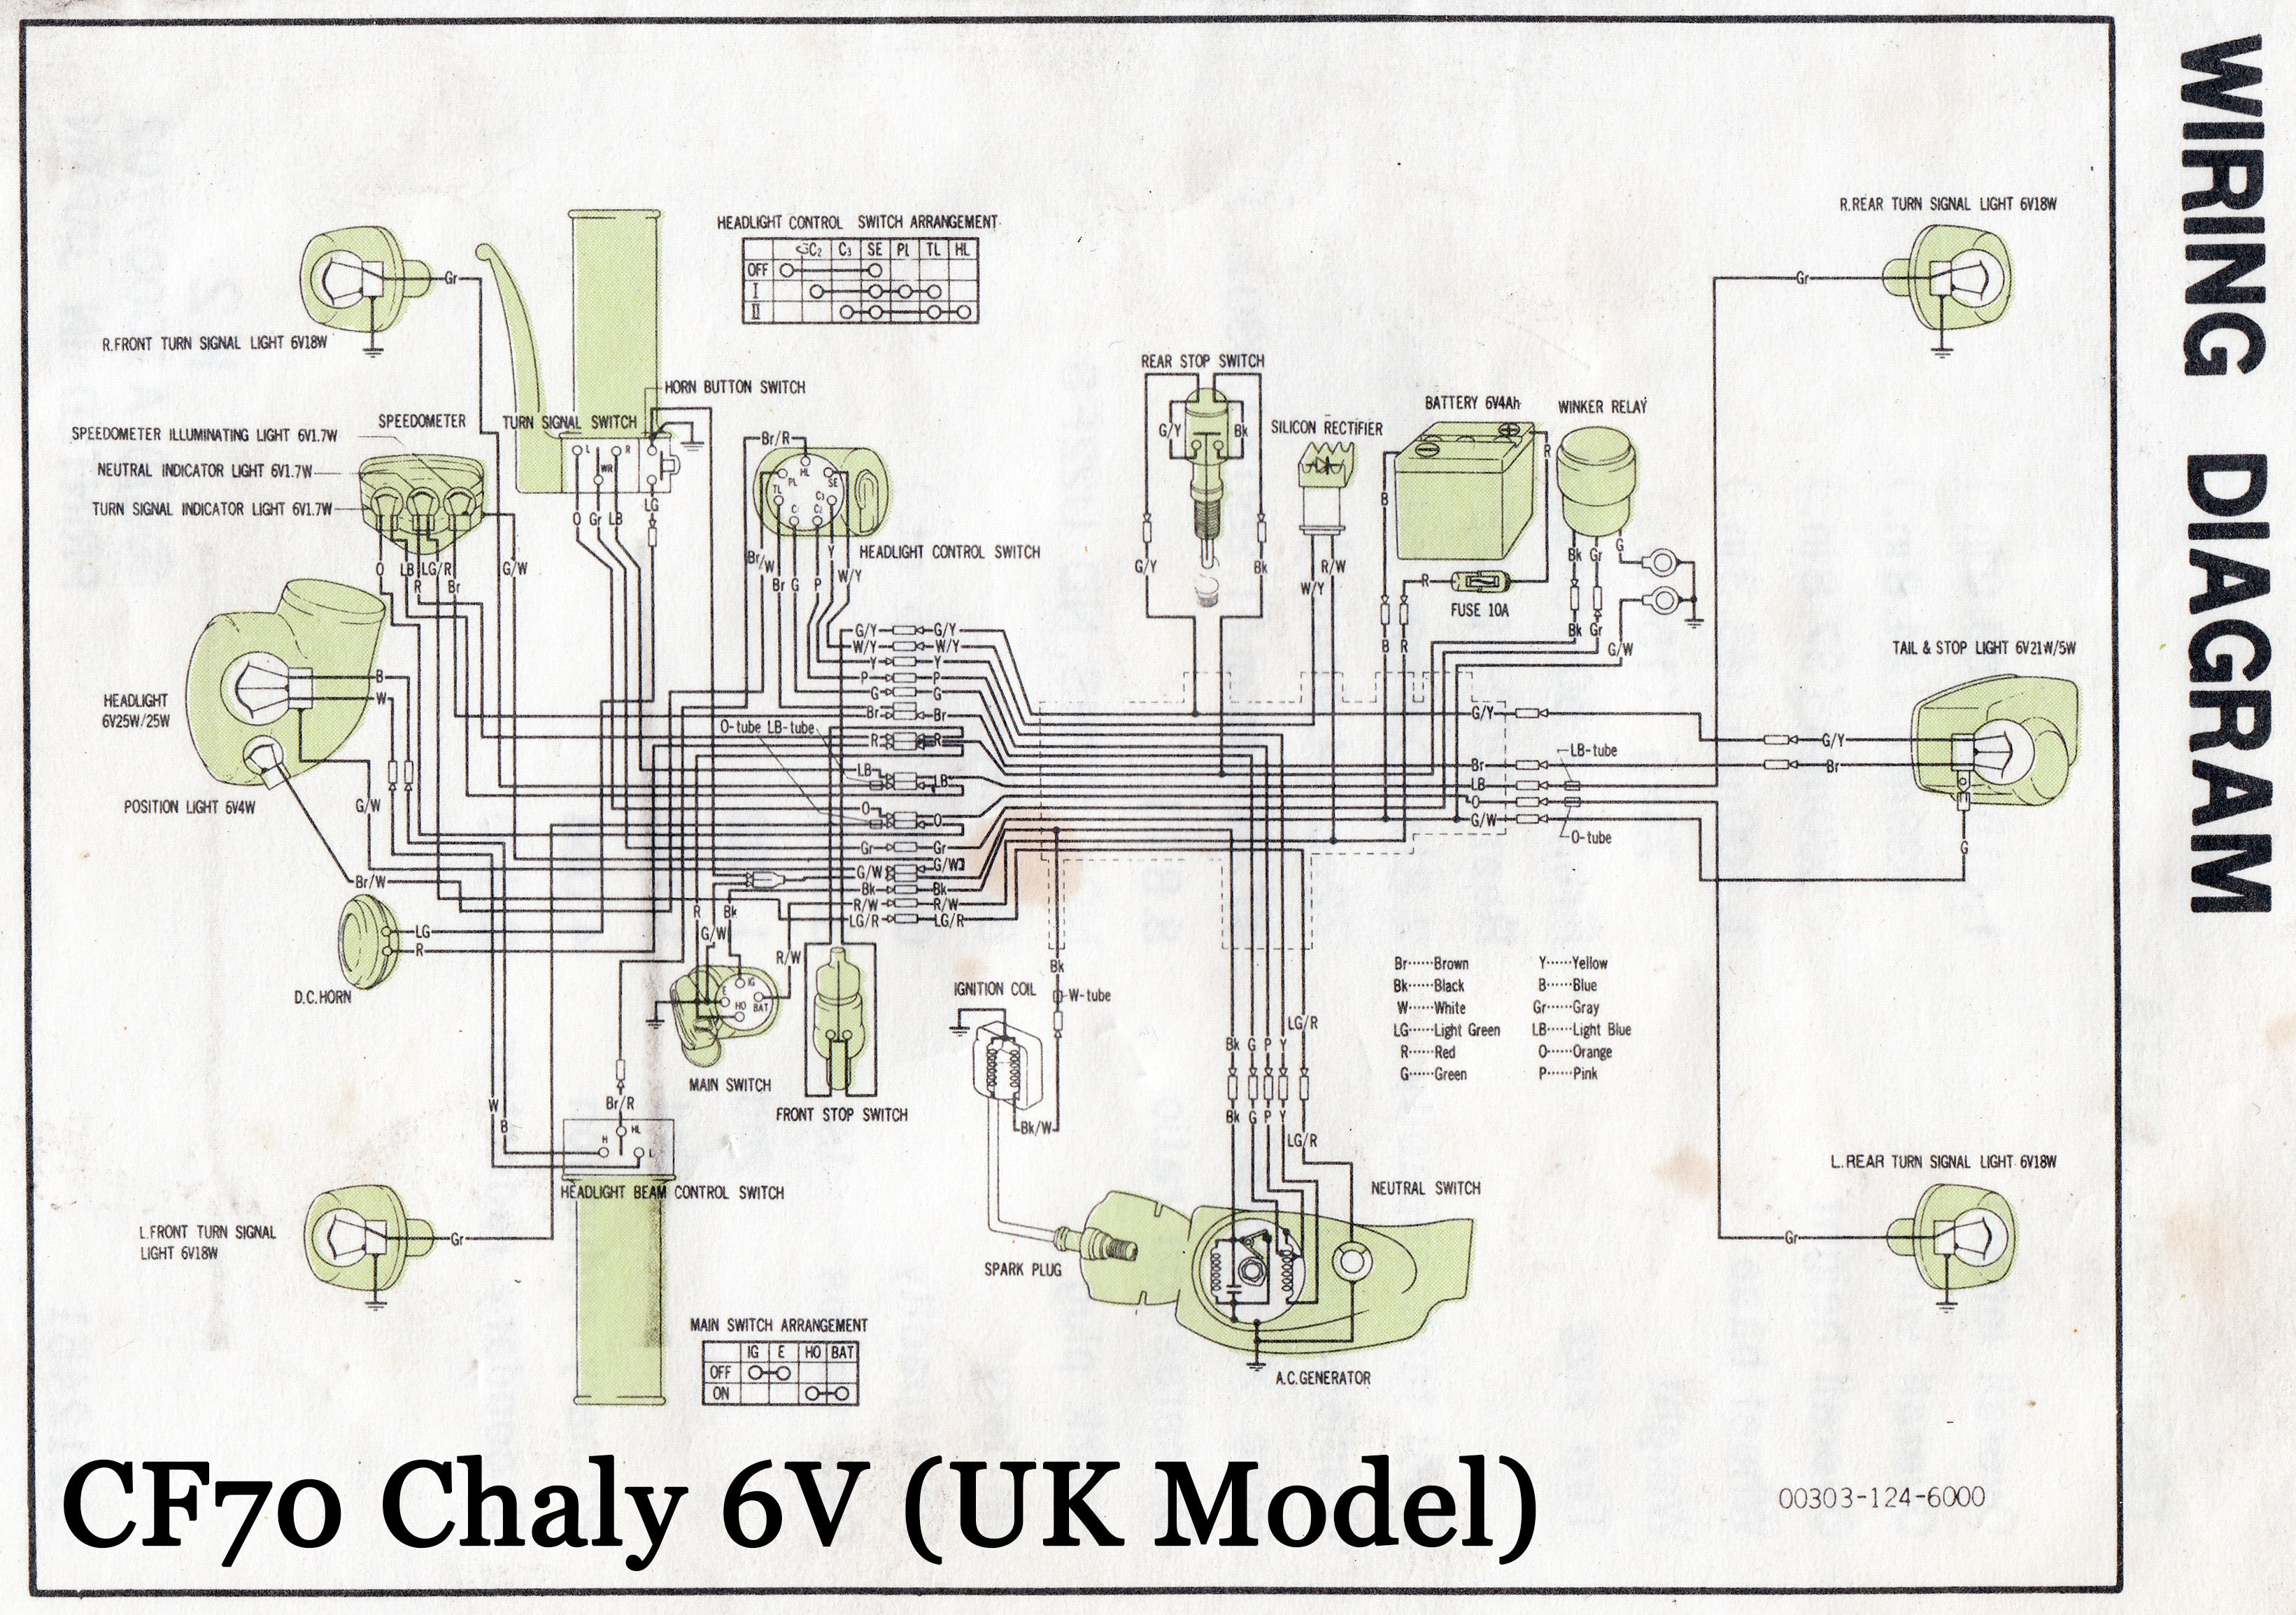 Wiring Diagrams 1966 Ford F100 Wiring Diagram Shunt Trip Breaker